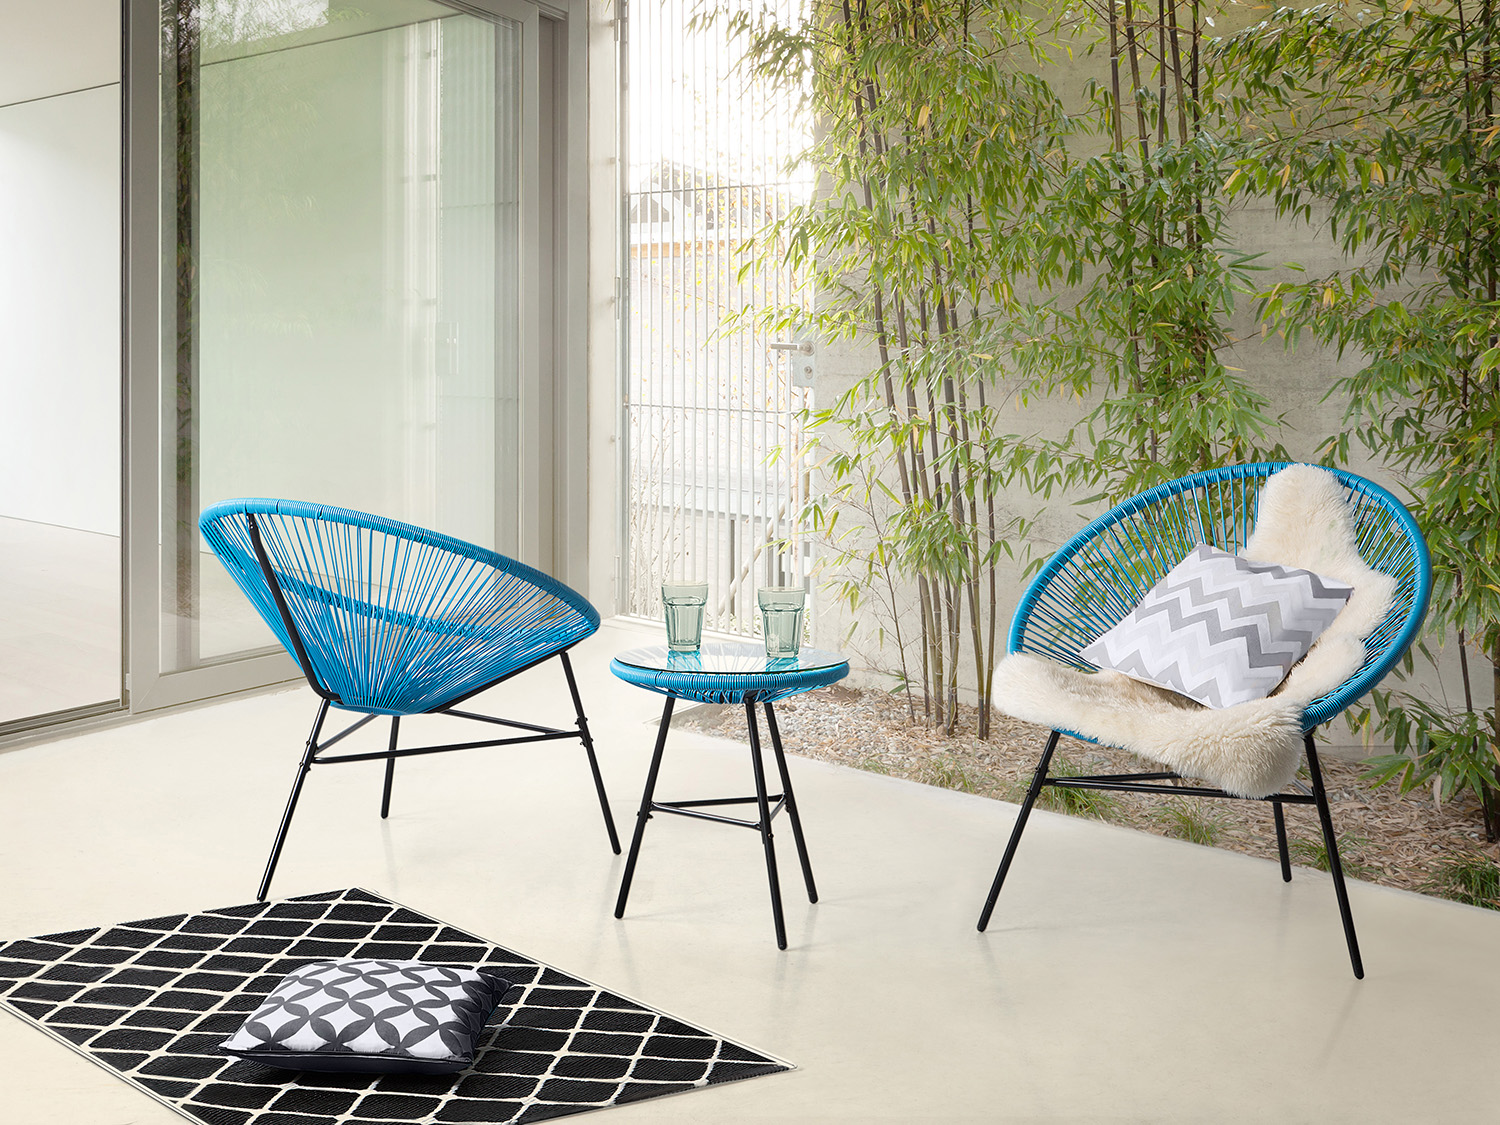 Garden bistro set, table and 2 chairs, Mexican chair, weave pattern, blue  eBay